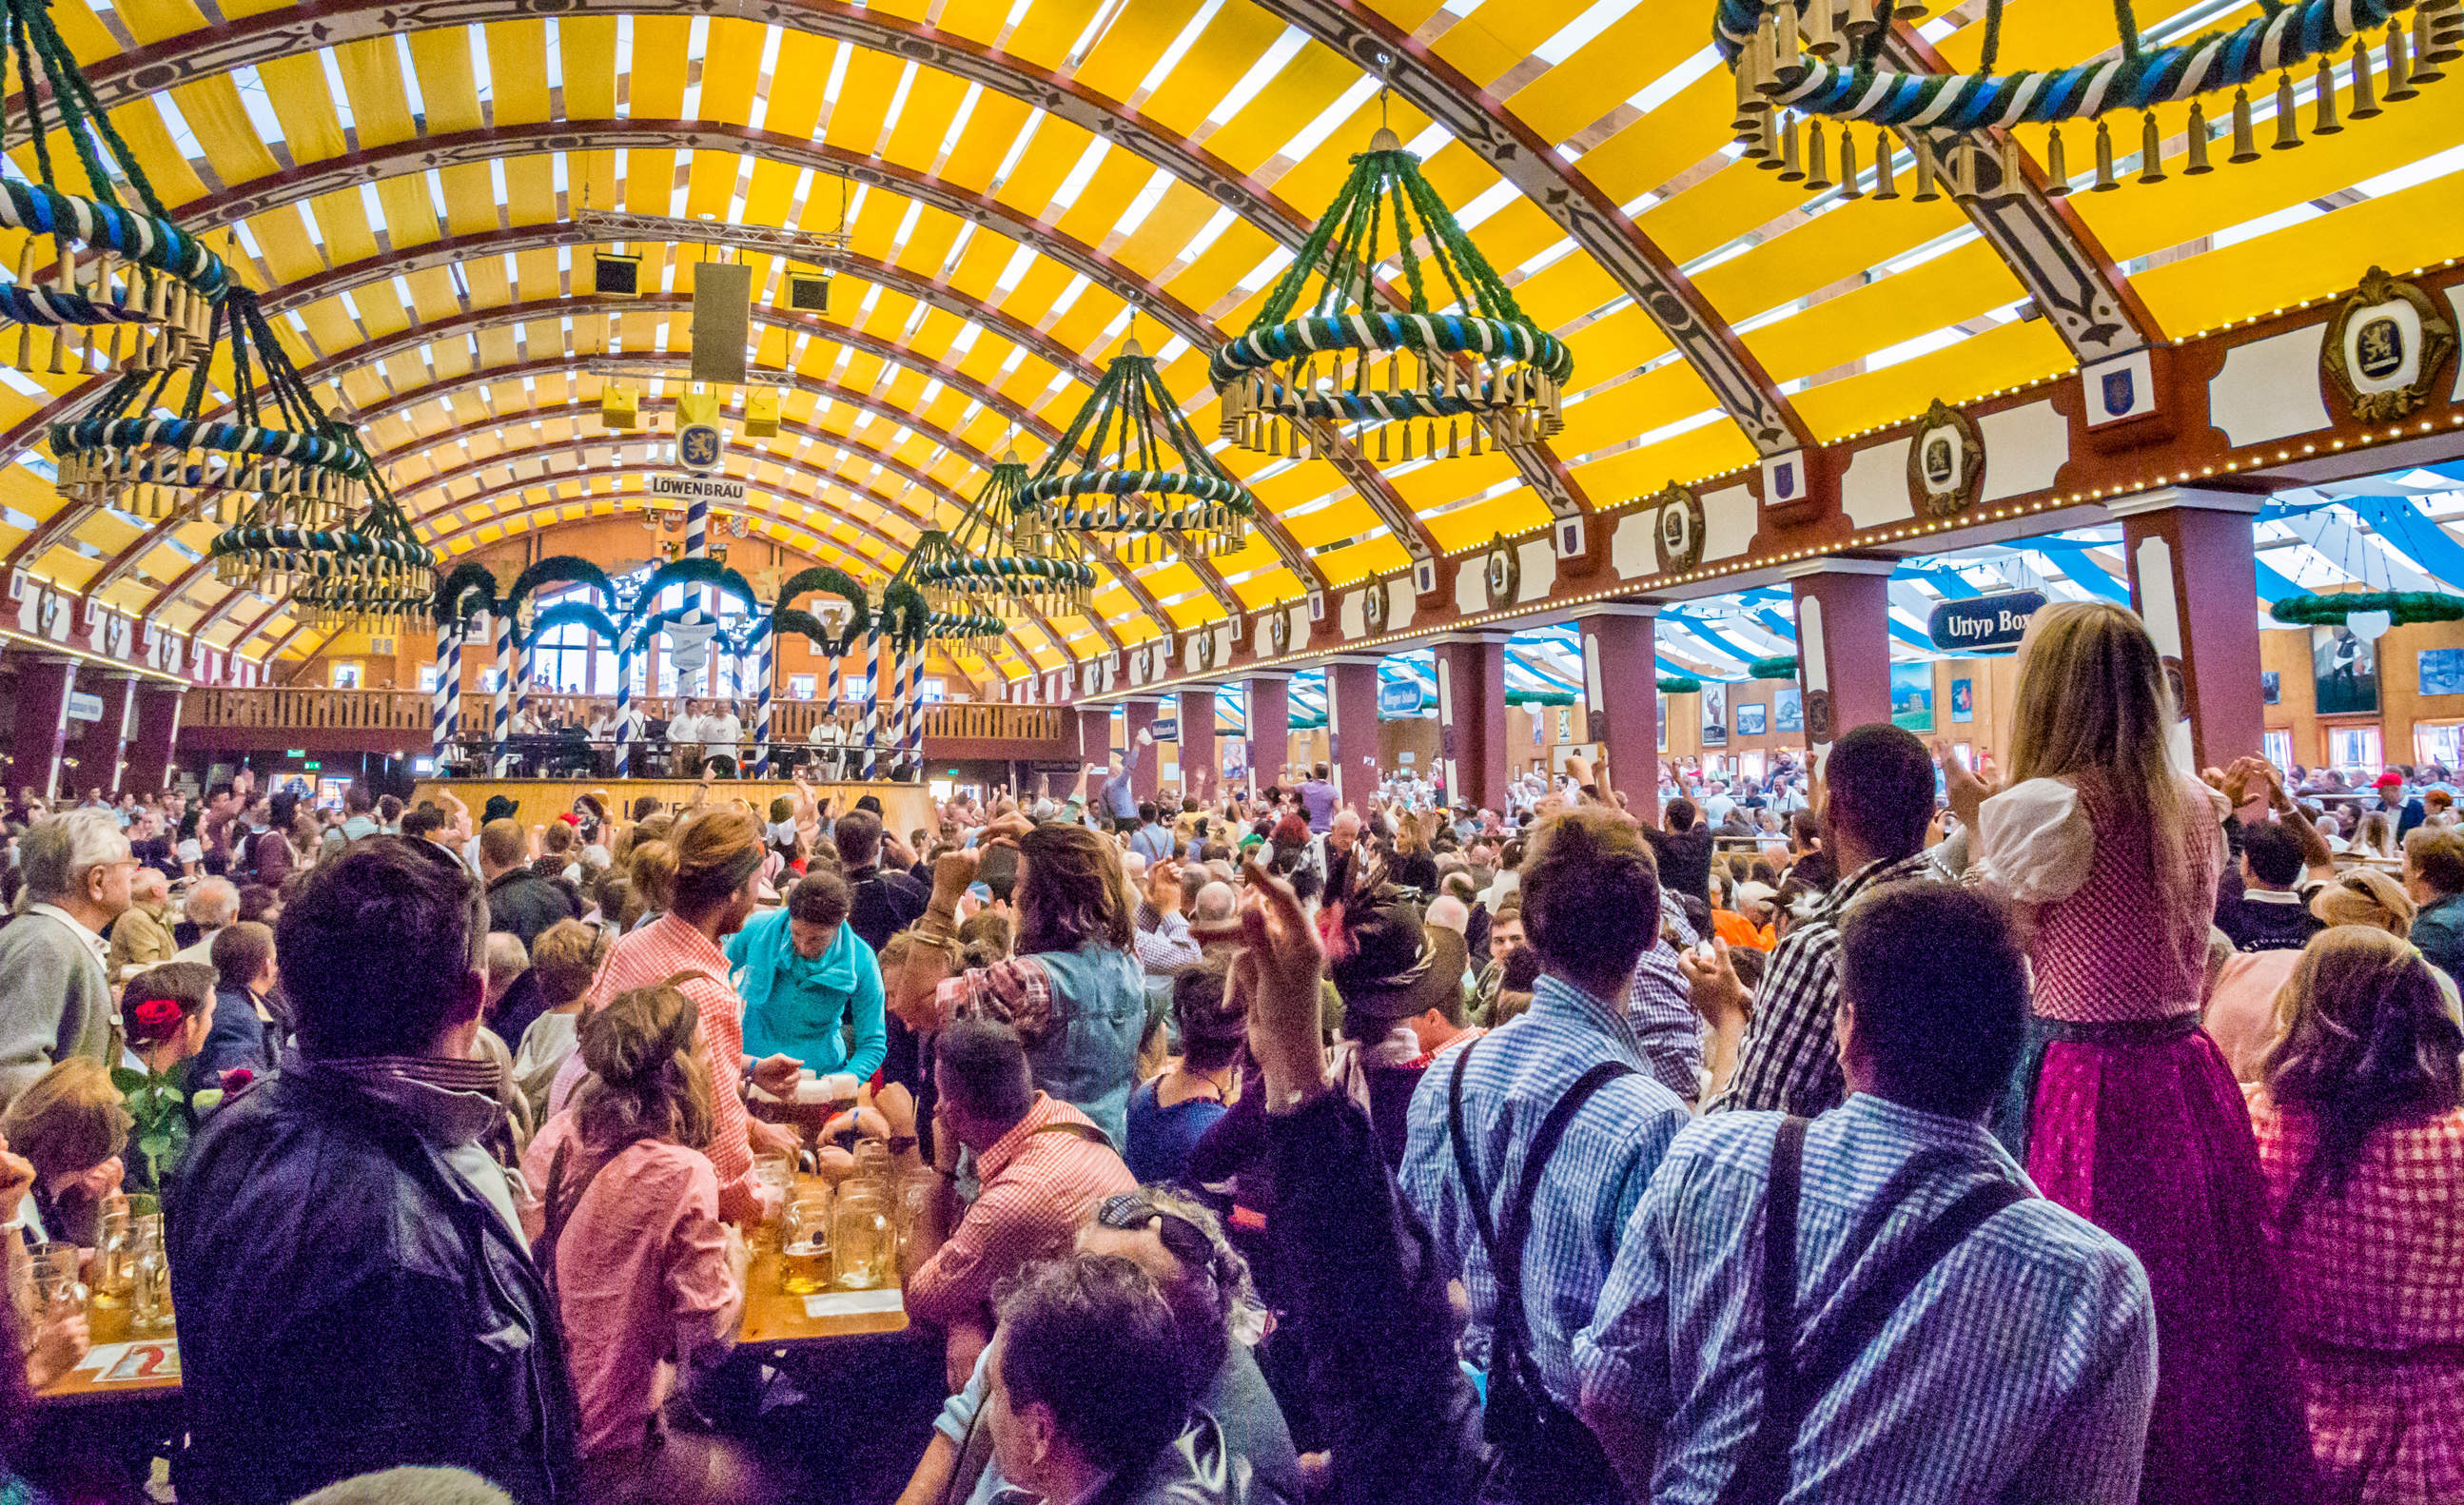 Oktoberfest events: Where to celebrate Oktoberfest 2018 around Europe